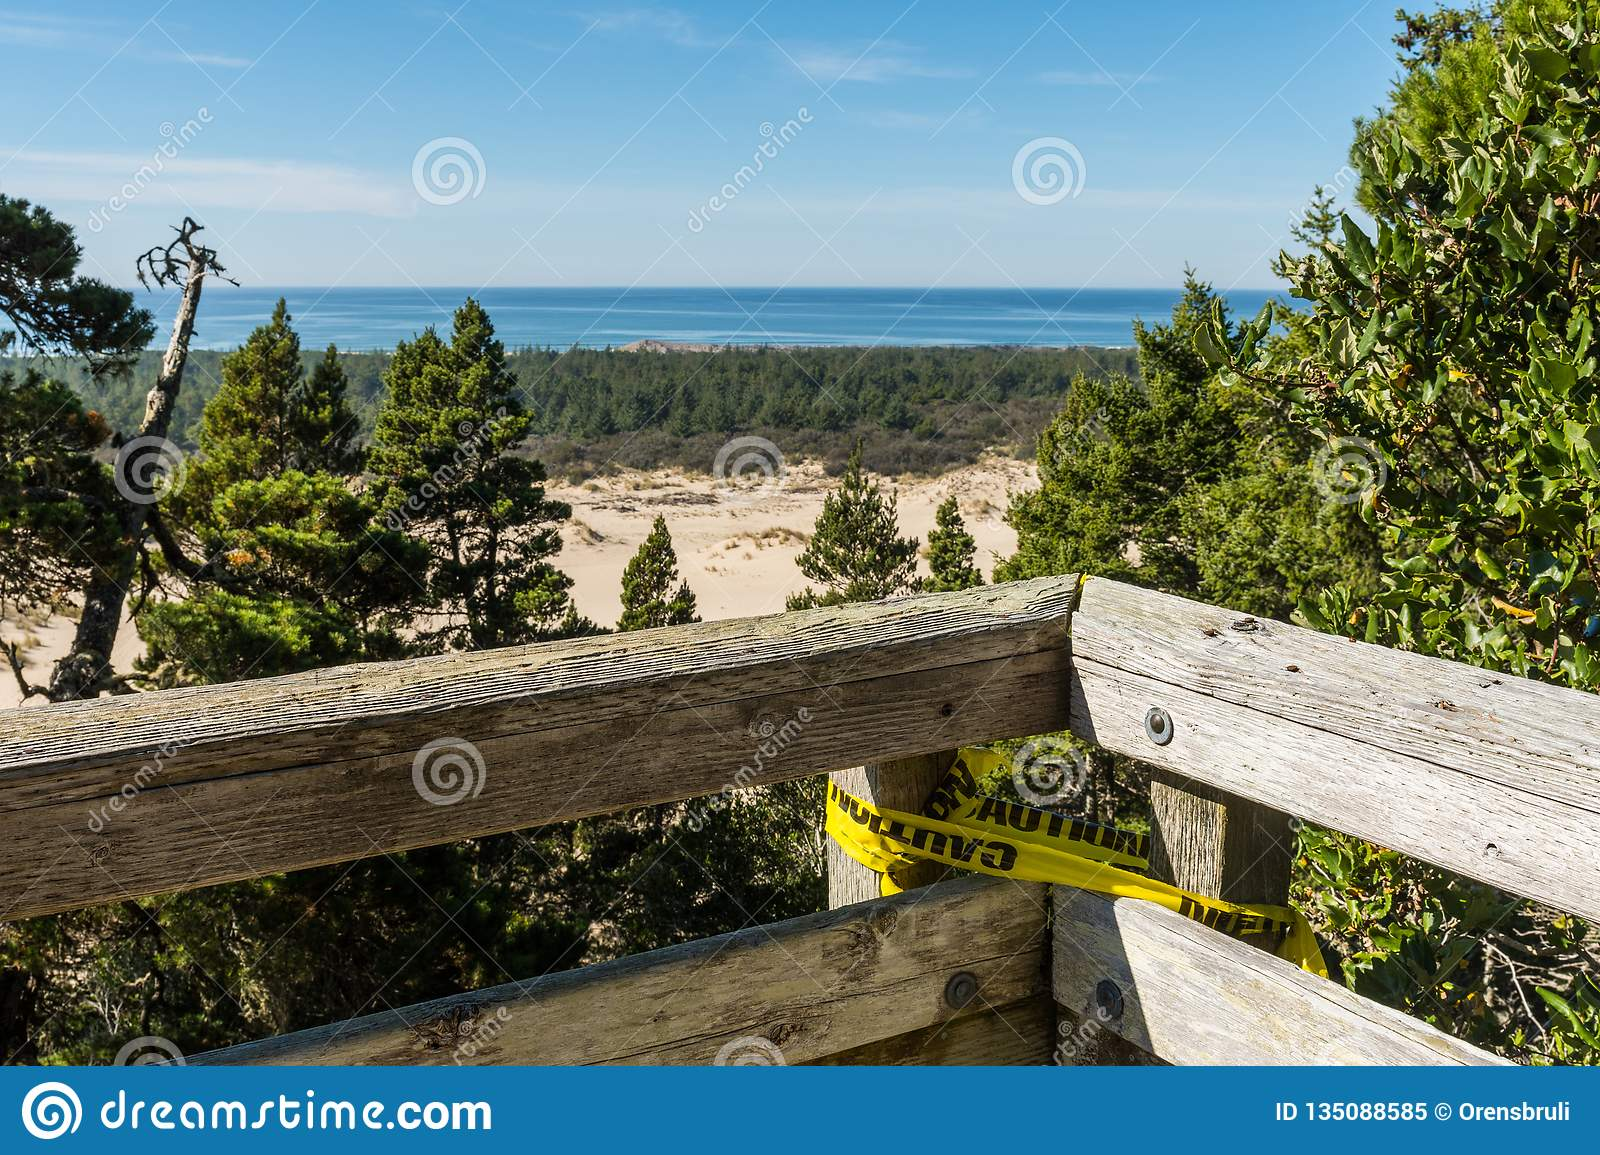 The sand and coastline from a high point of view over the Oregon dunes